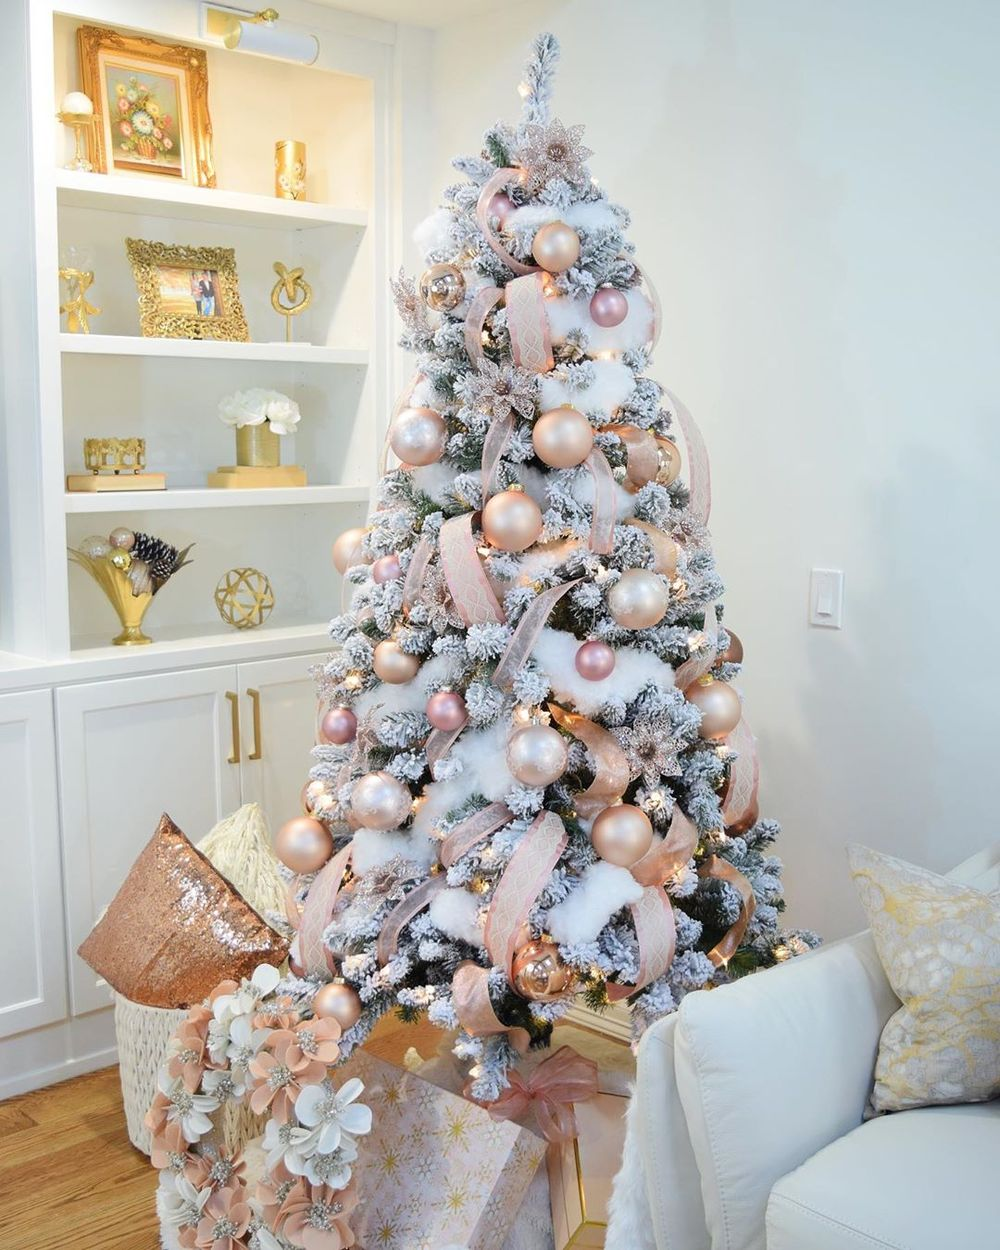 8 Glam Christmas Decor Ideas